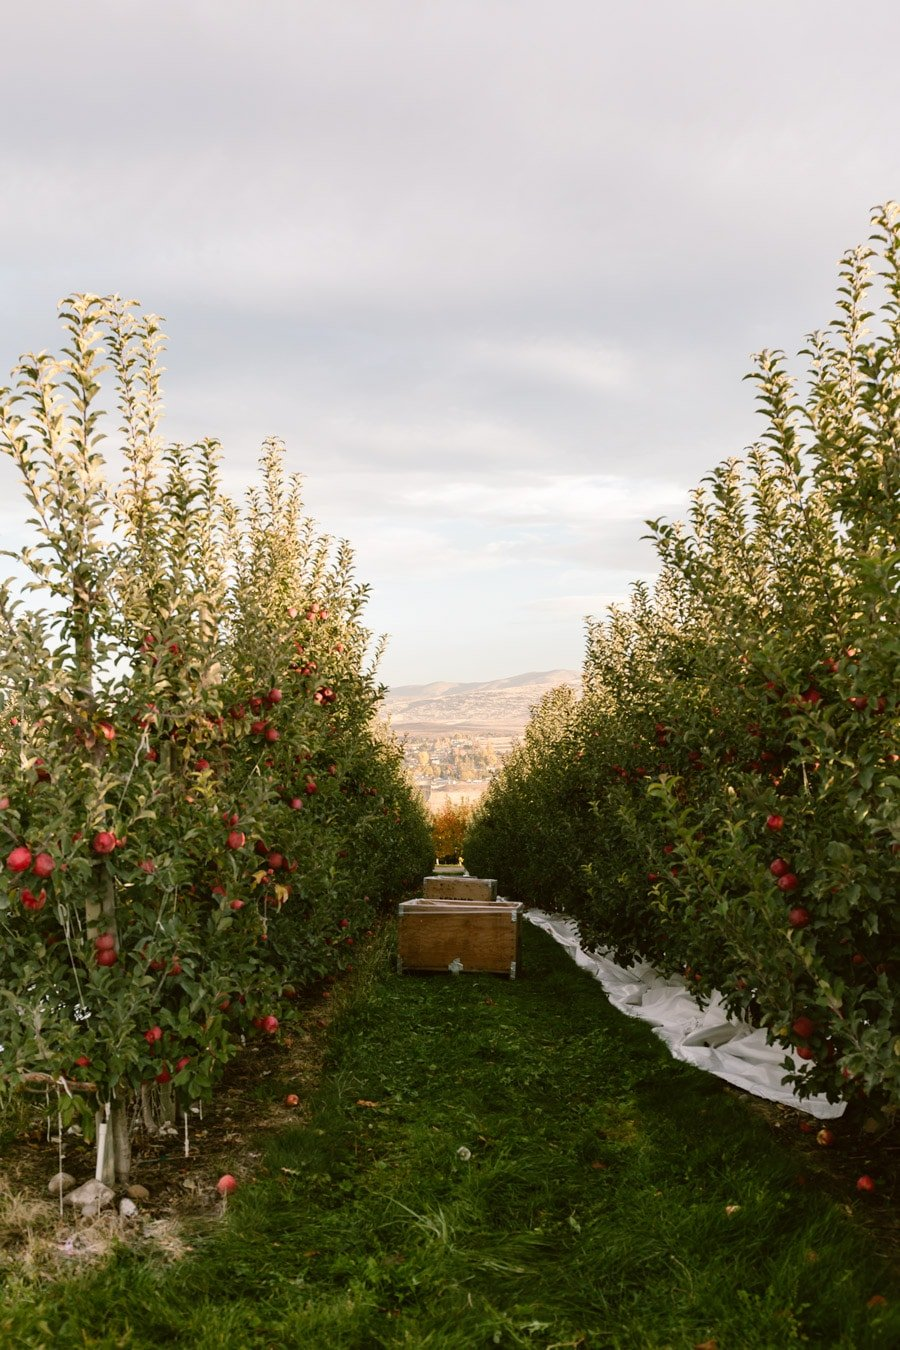 How to make apple roses - Showcasing the beautiful orchards of Autumn Glory Apples in Yakima Washington.